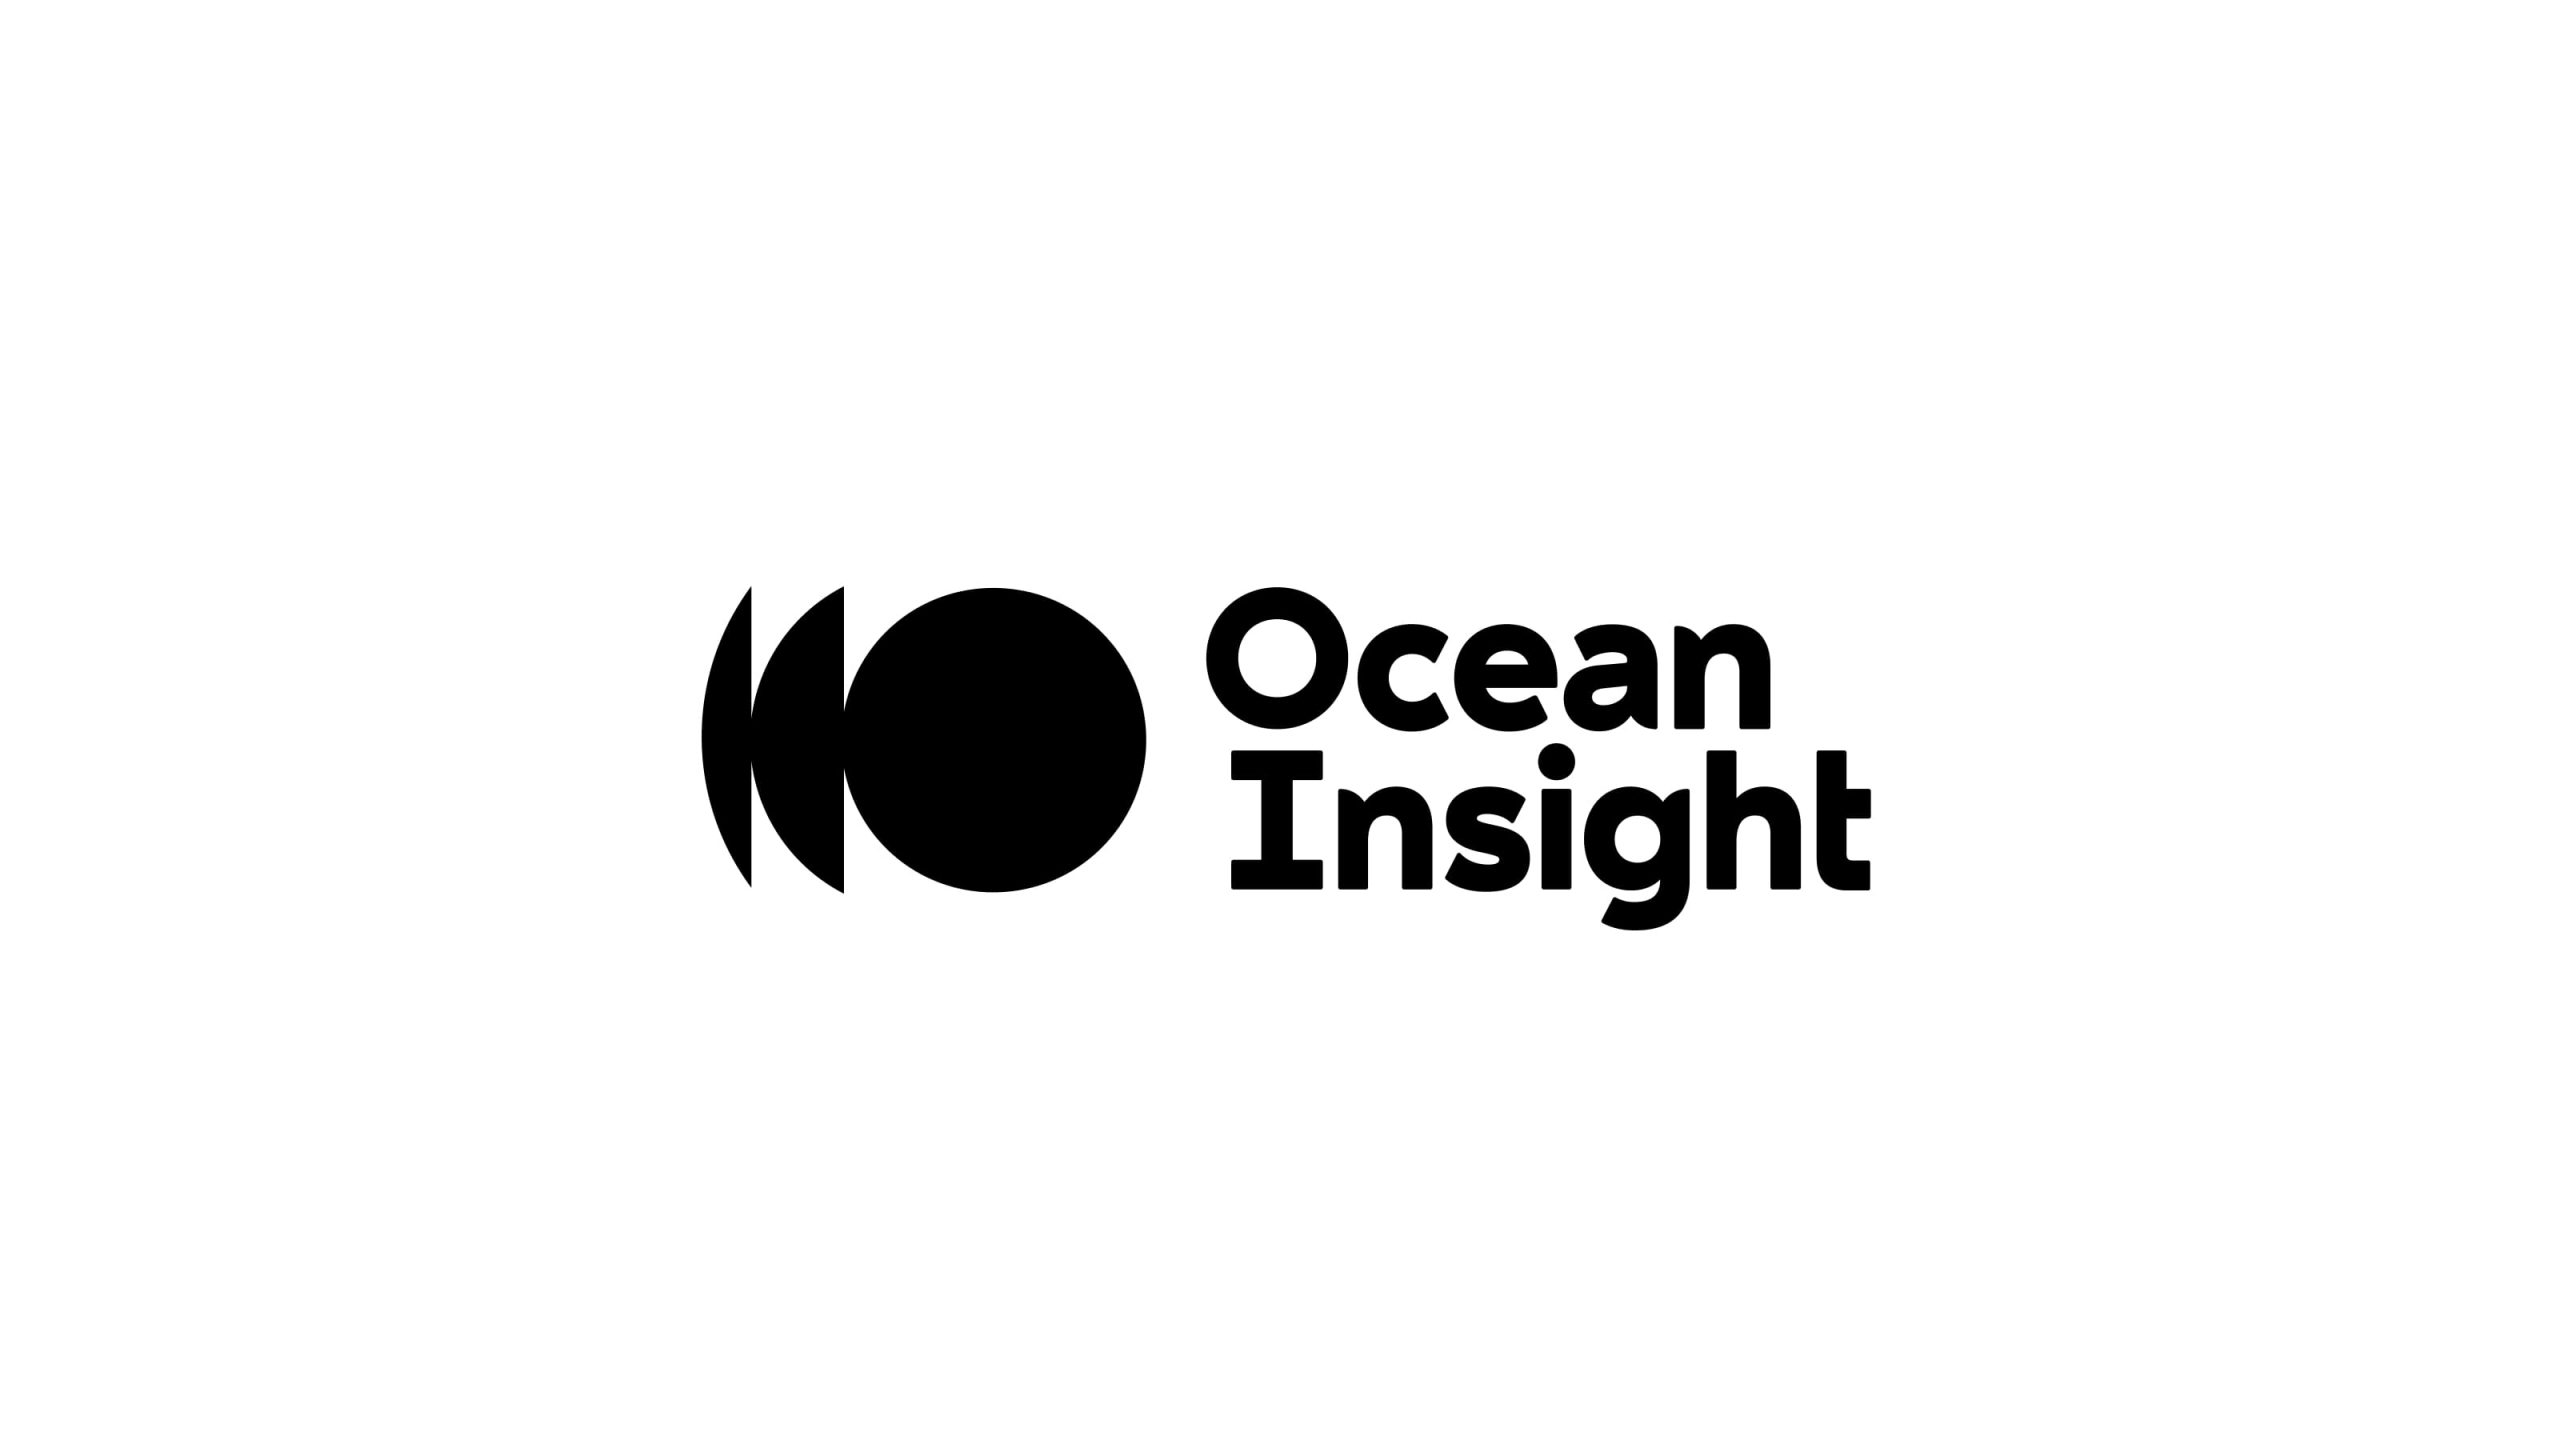 Ocean Insight maintains spectral tools support for research companies fighting COVID-19